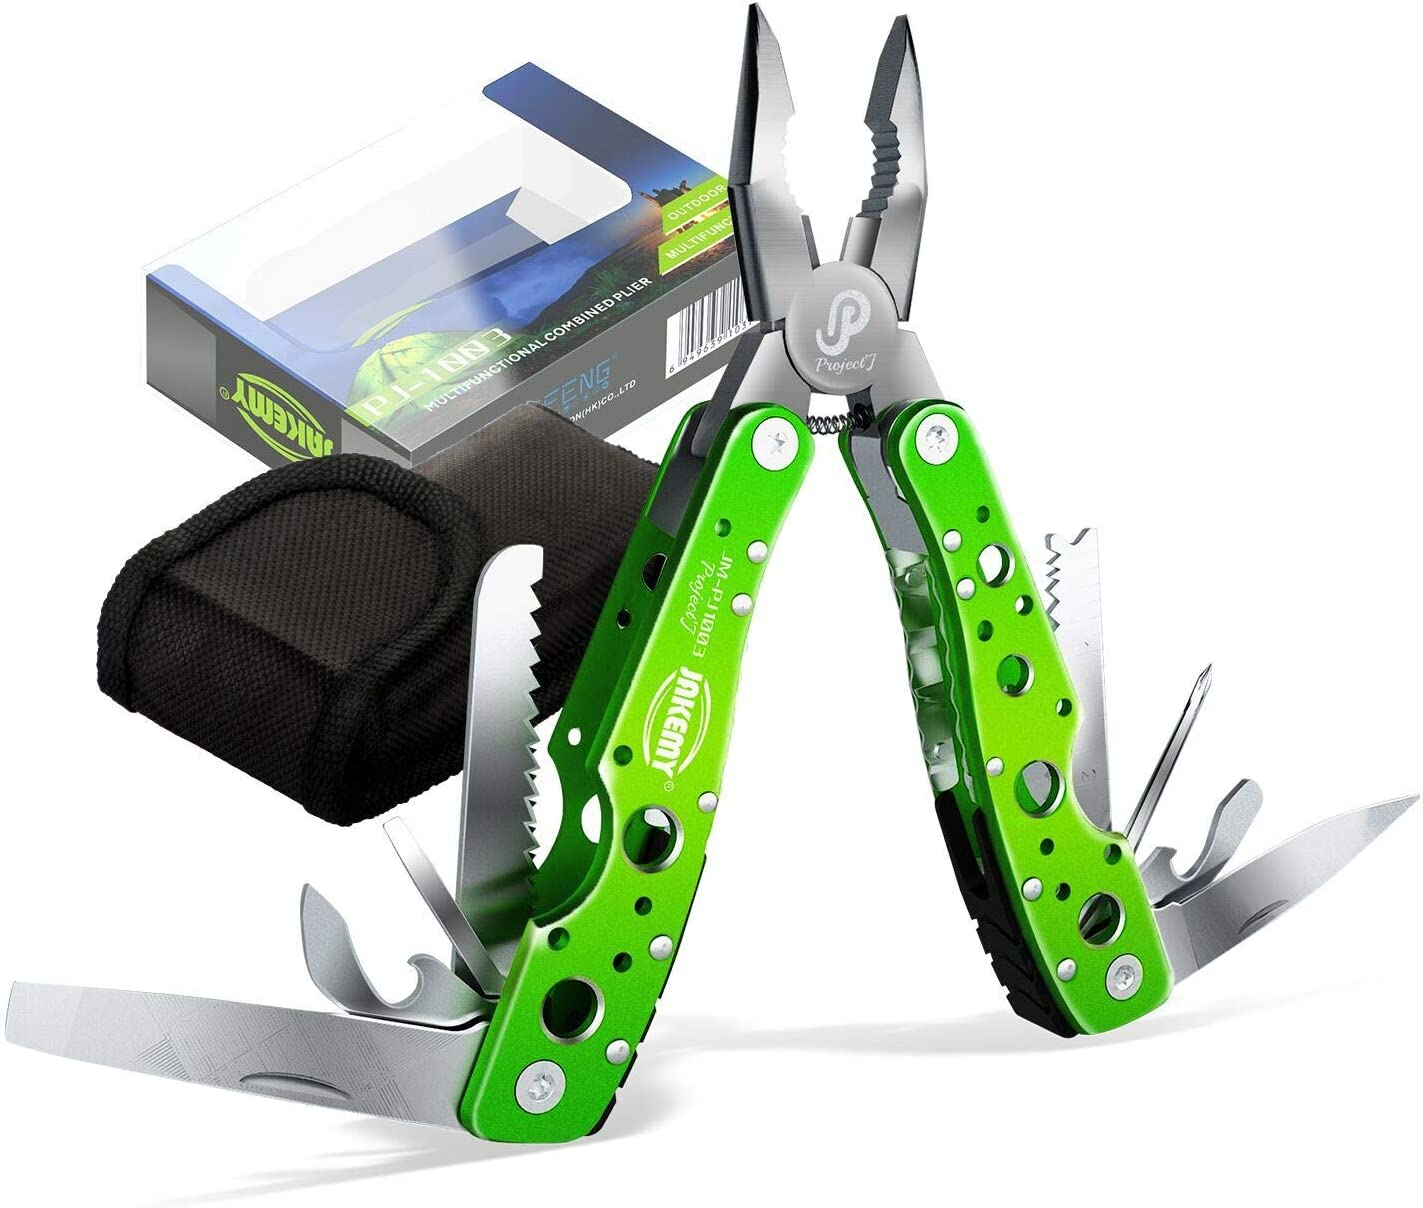 JAKEMY Ranking TOP17 9 Tools 15 Functions in Pock Challenge the lowest price Folding Portable Multitool 1